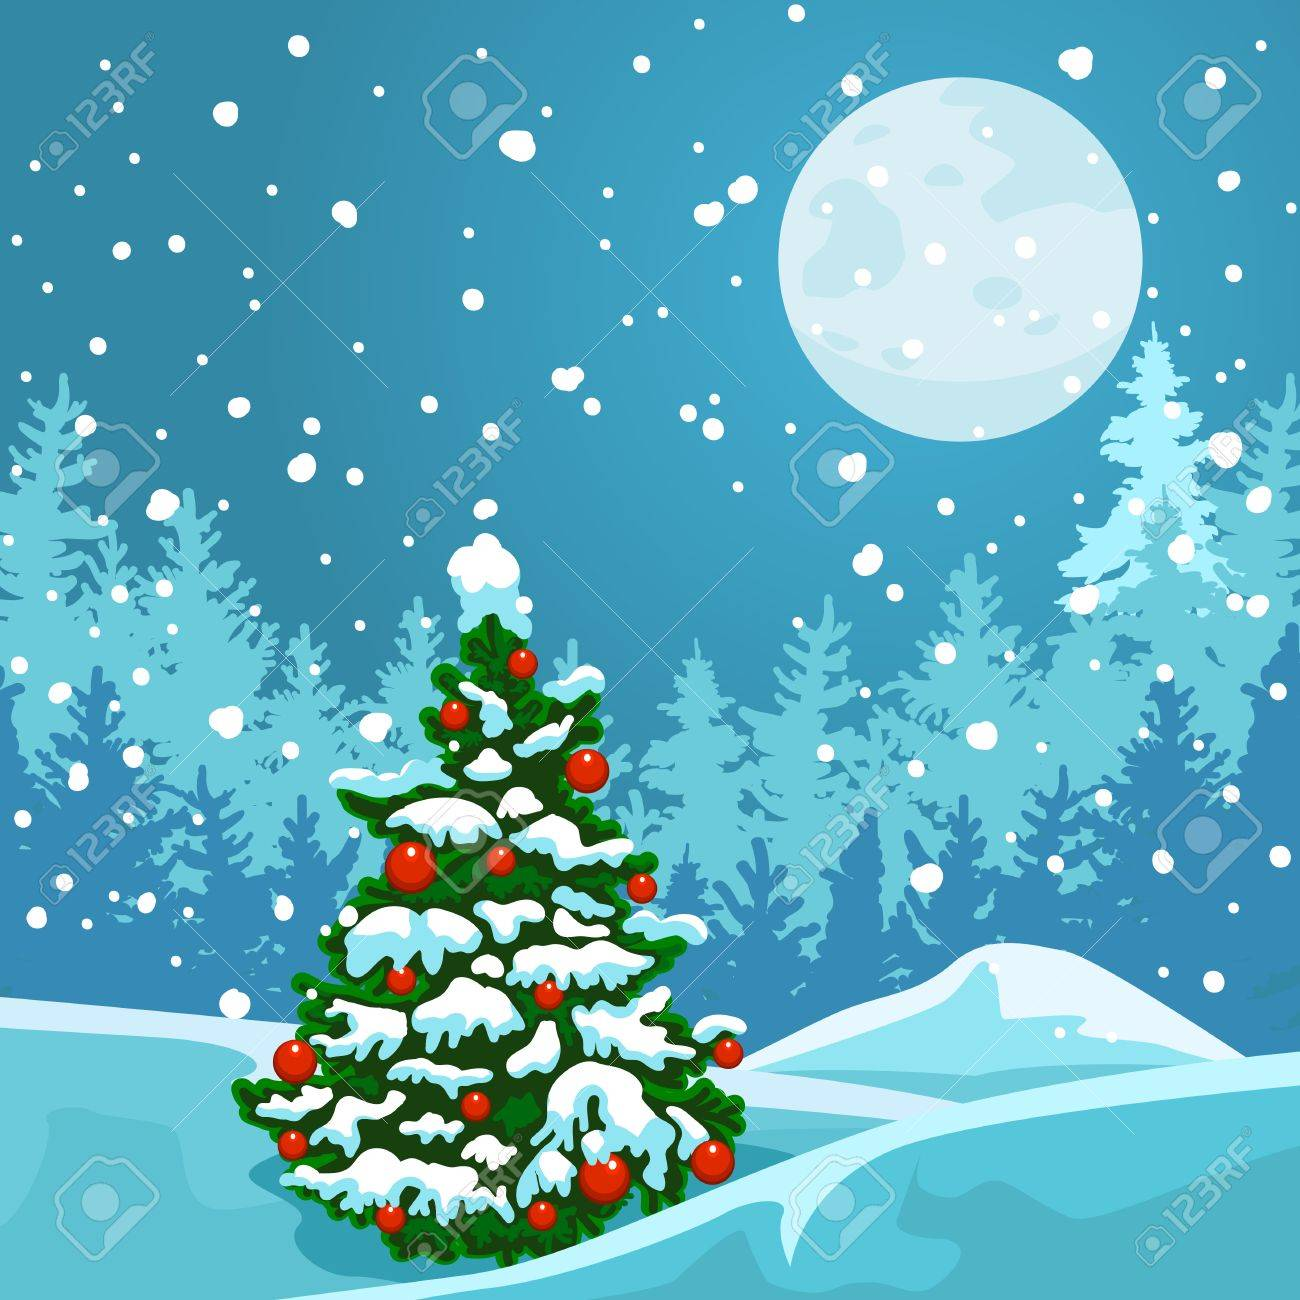 new year card christmas tree on the background of a winter landscape full moon